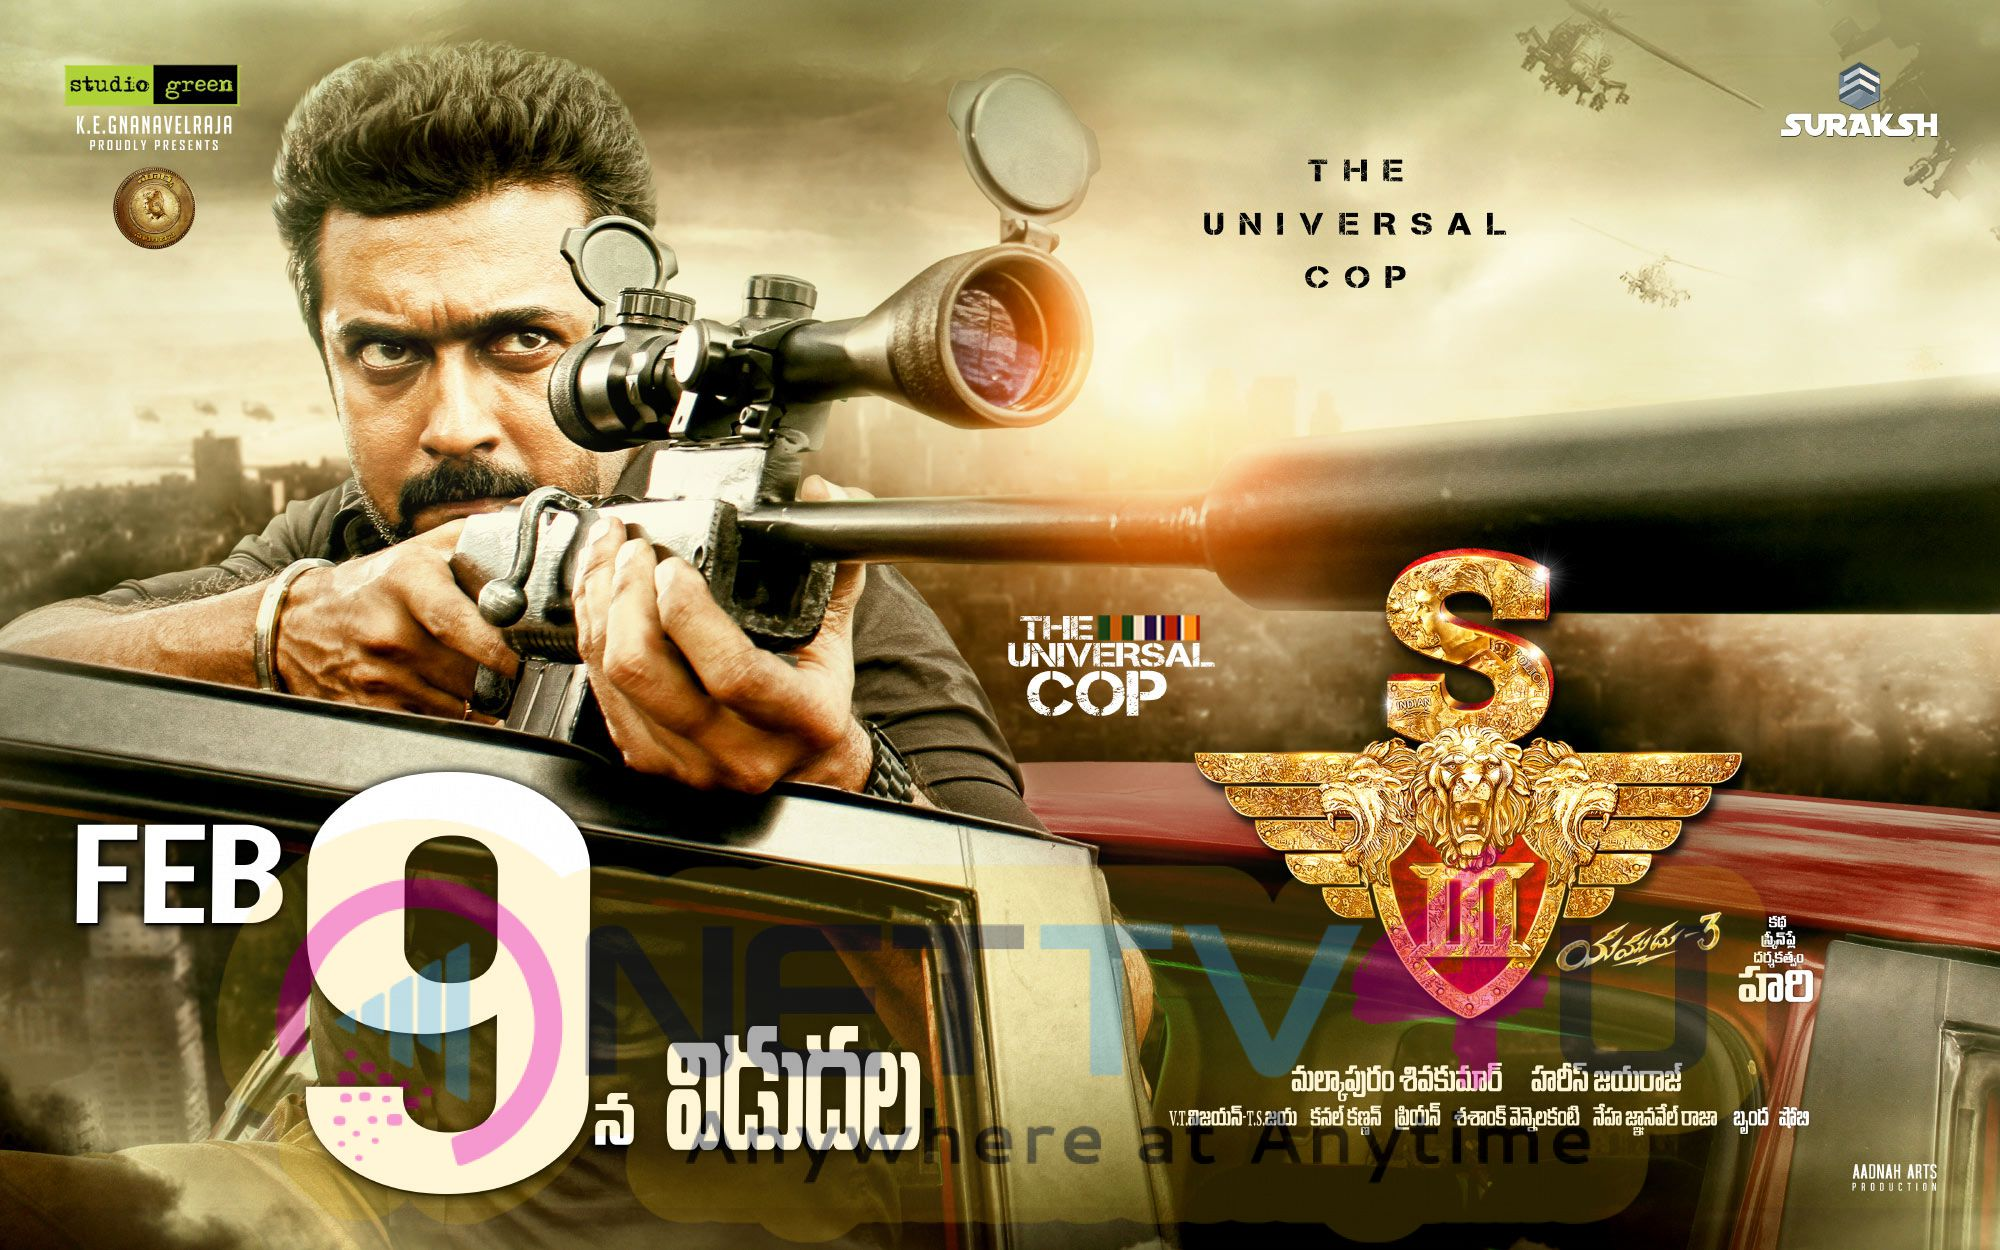 S3 Release Date Poster In Telugu On 9th Feb 2017